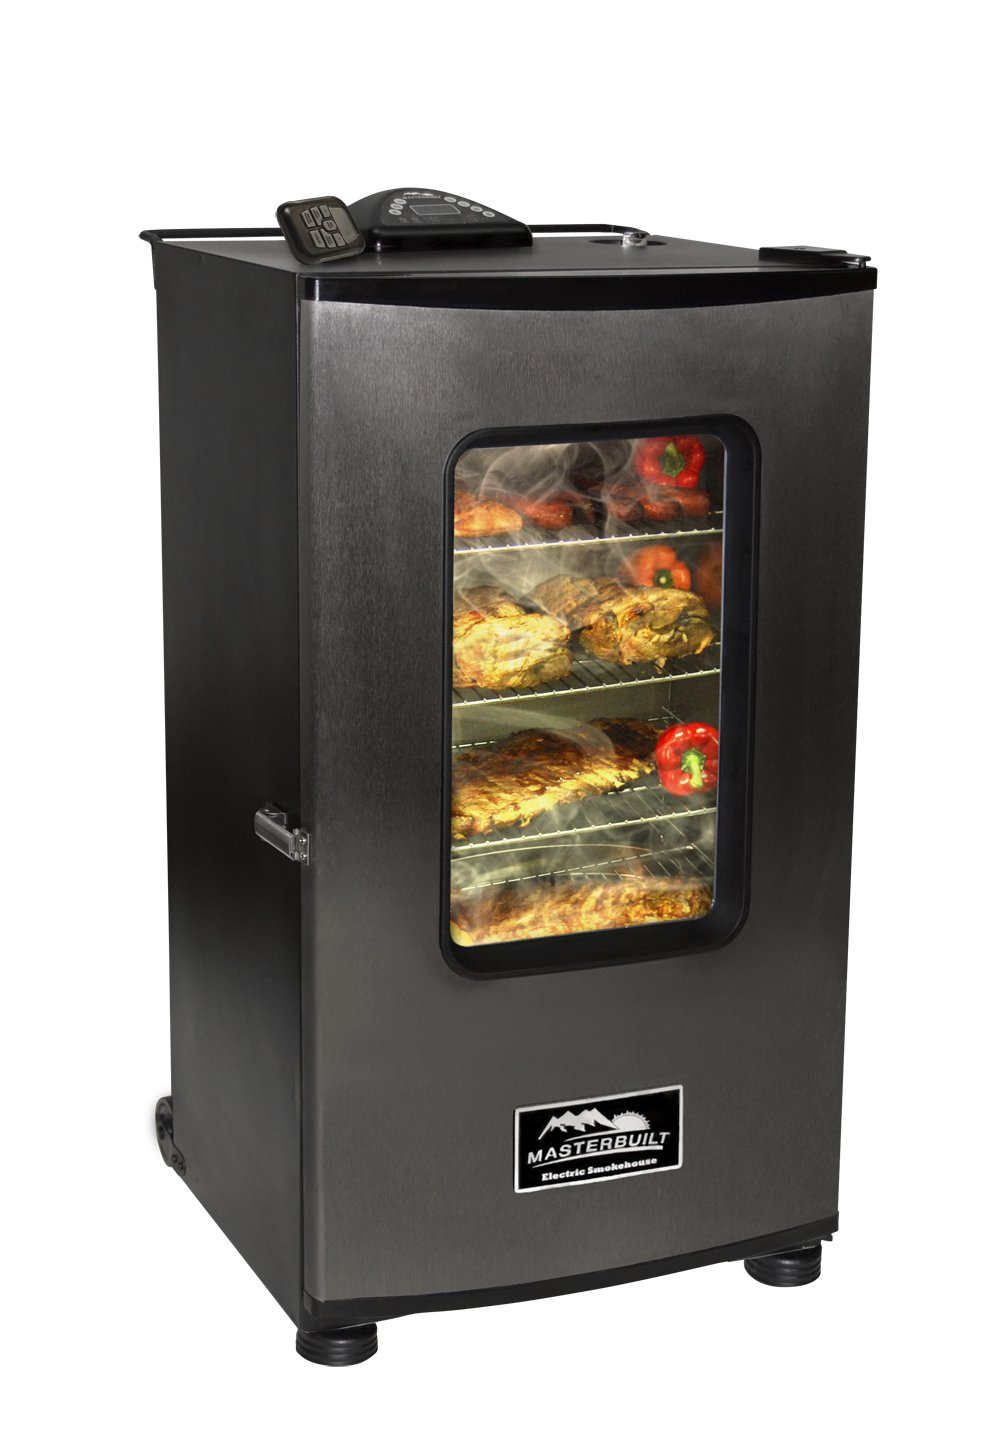 The Masterbuilt 20070411 is arguably the best smoker grill out on the market right now.